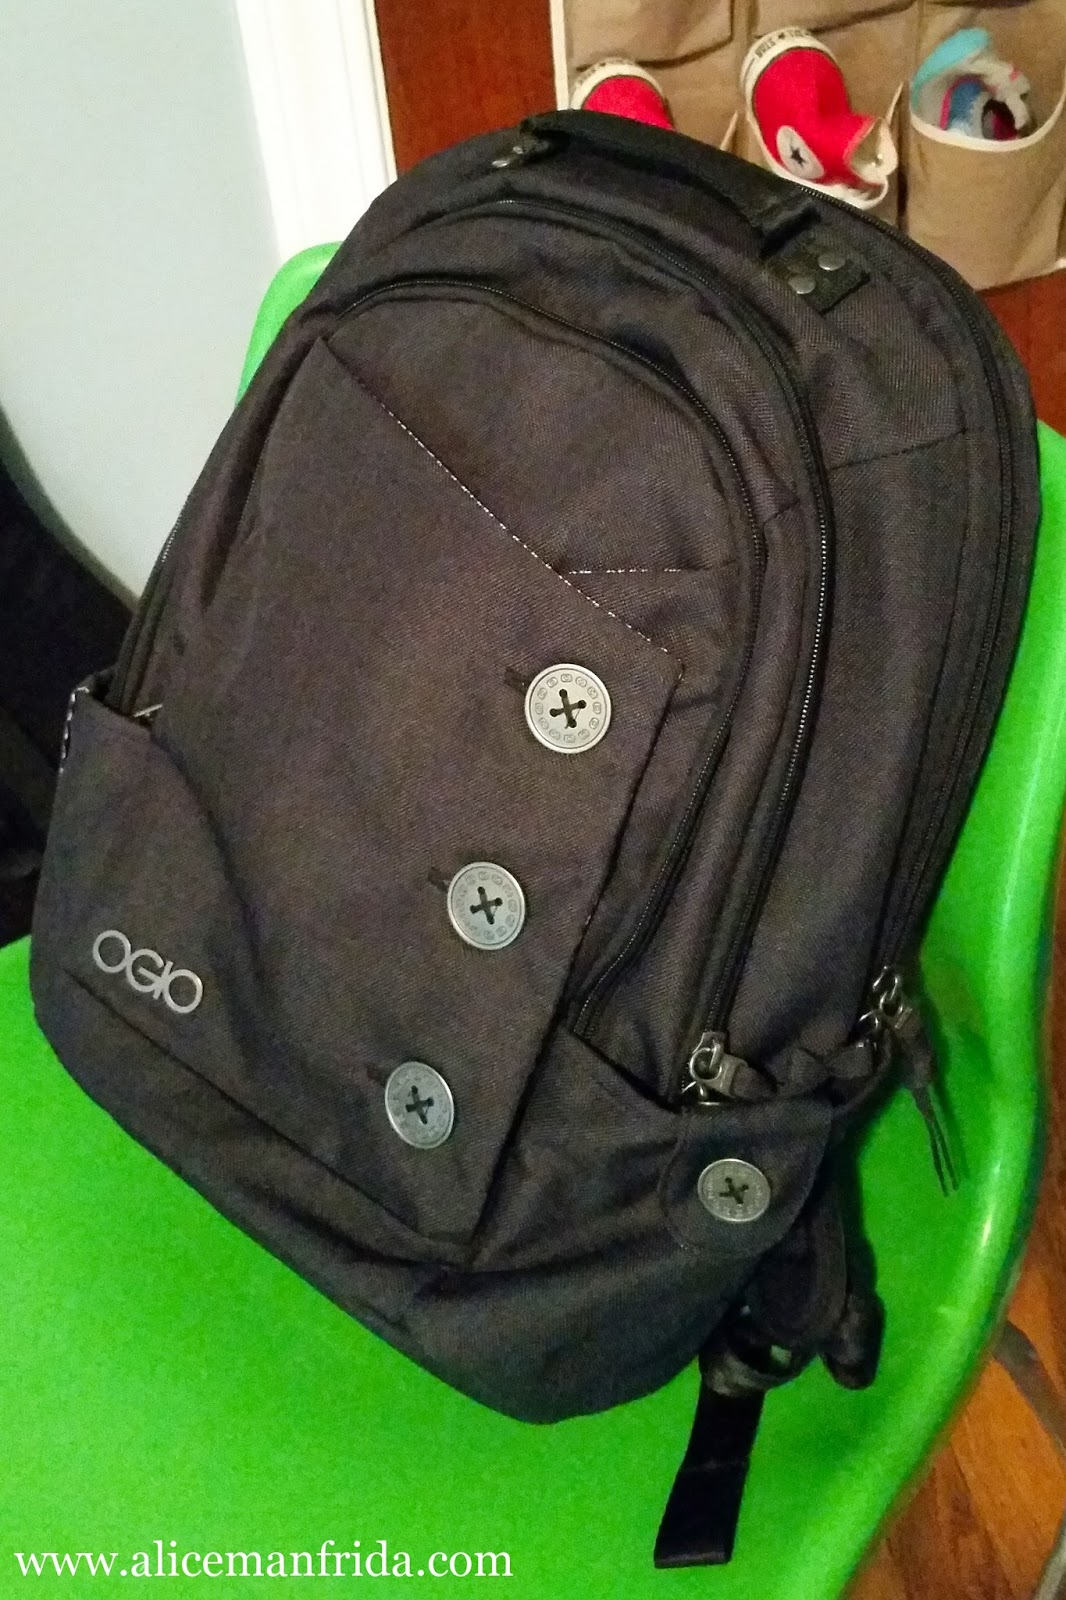 Ogio Backpack Review LtpxTkBn